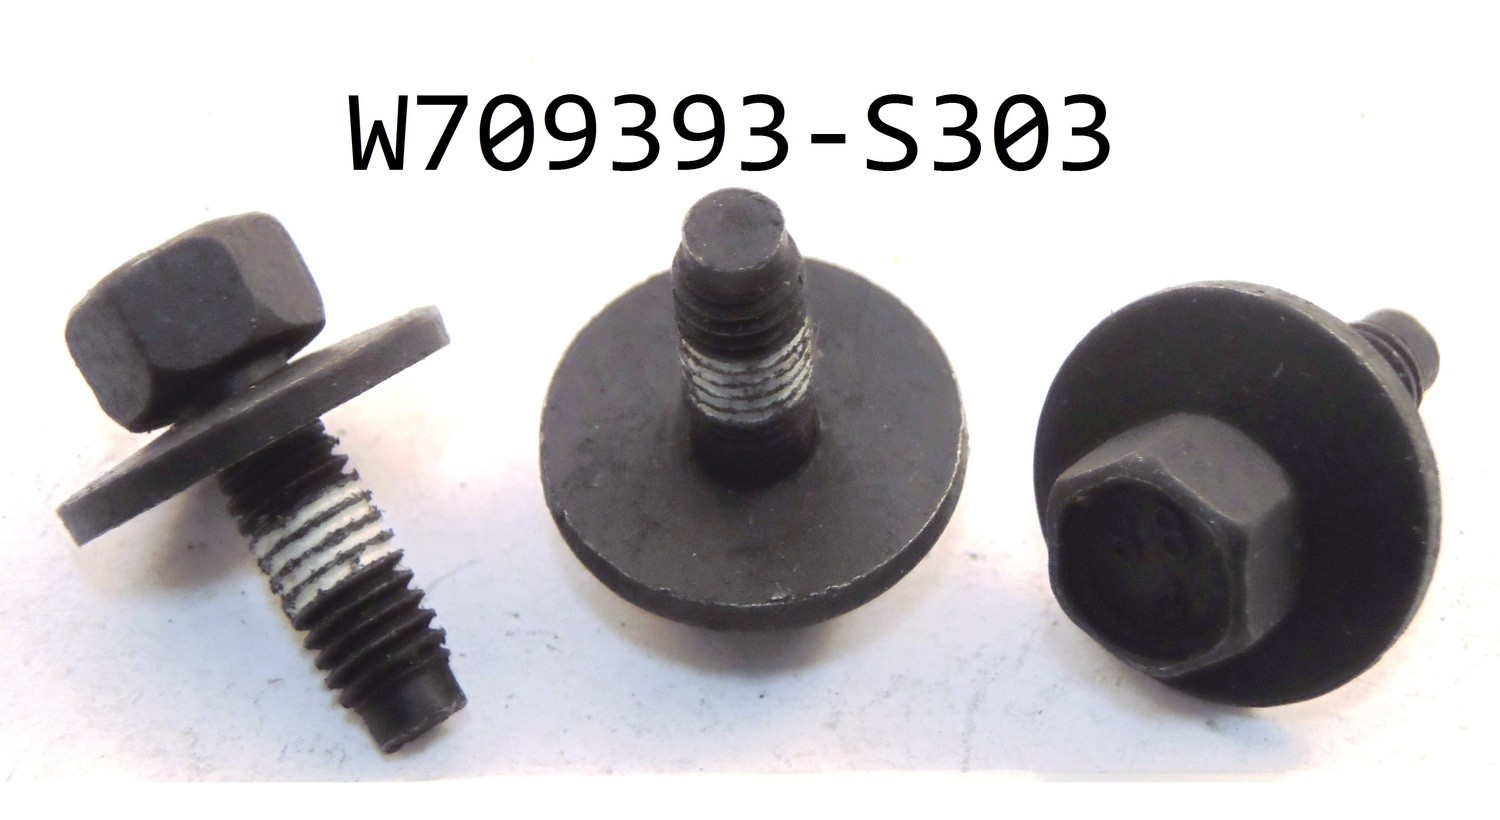 Ford W709393-S303